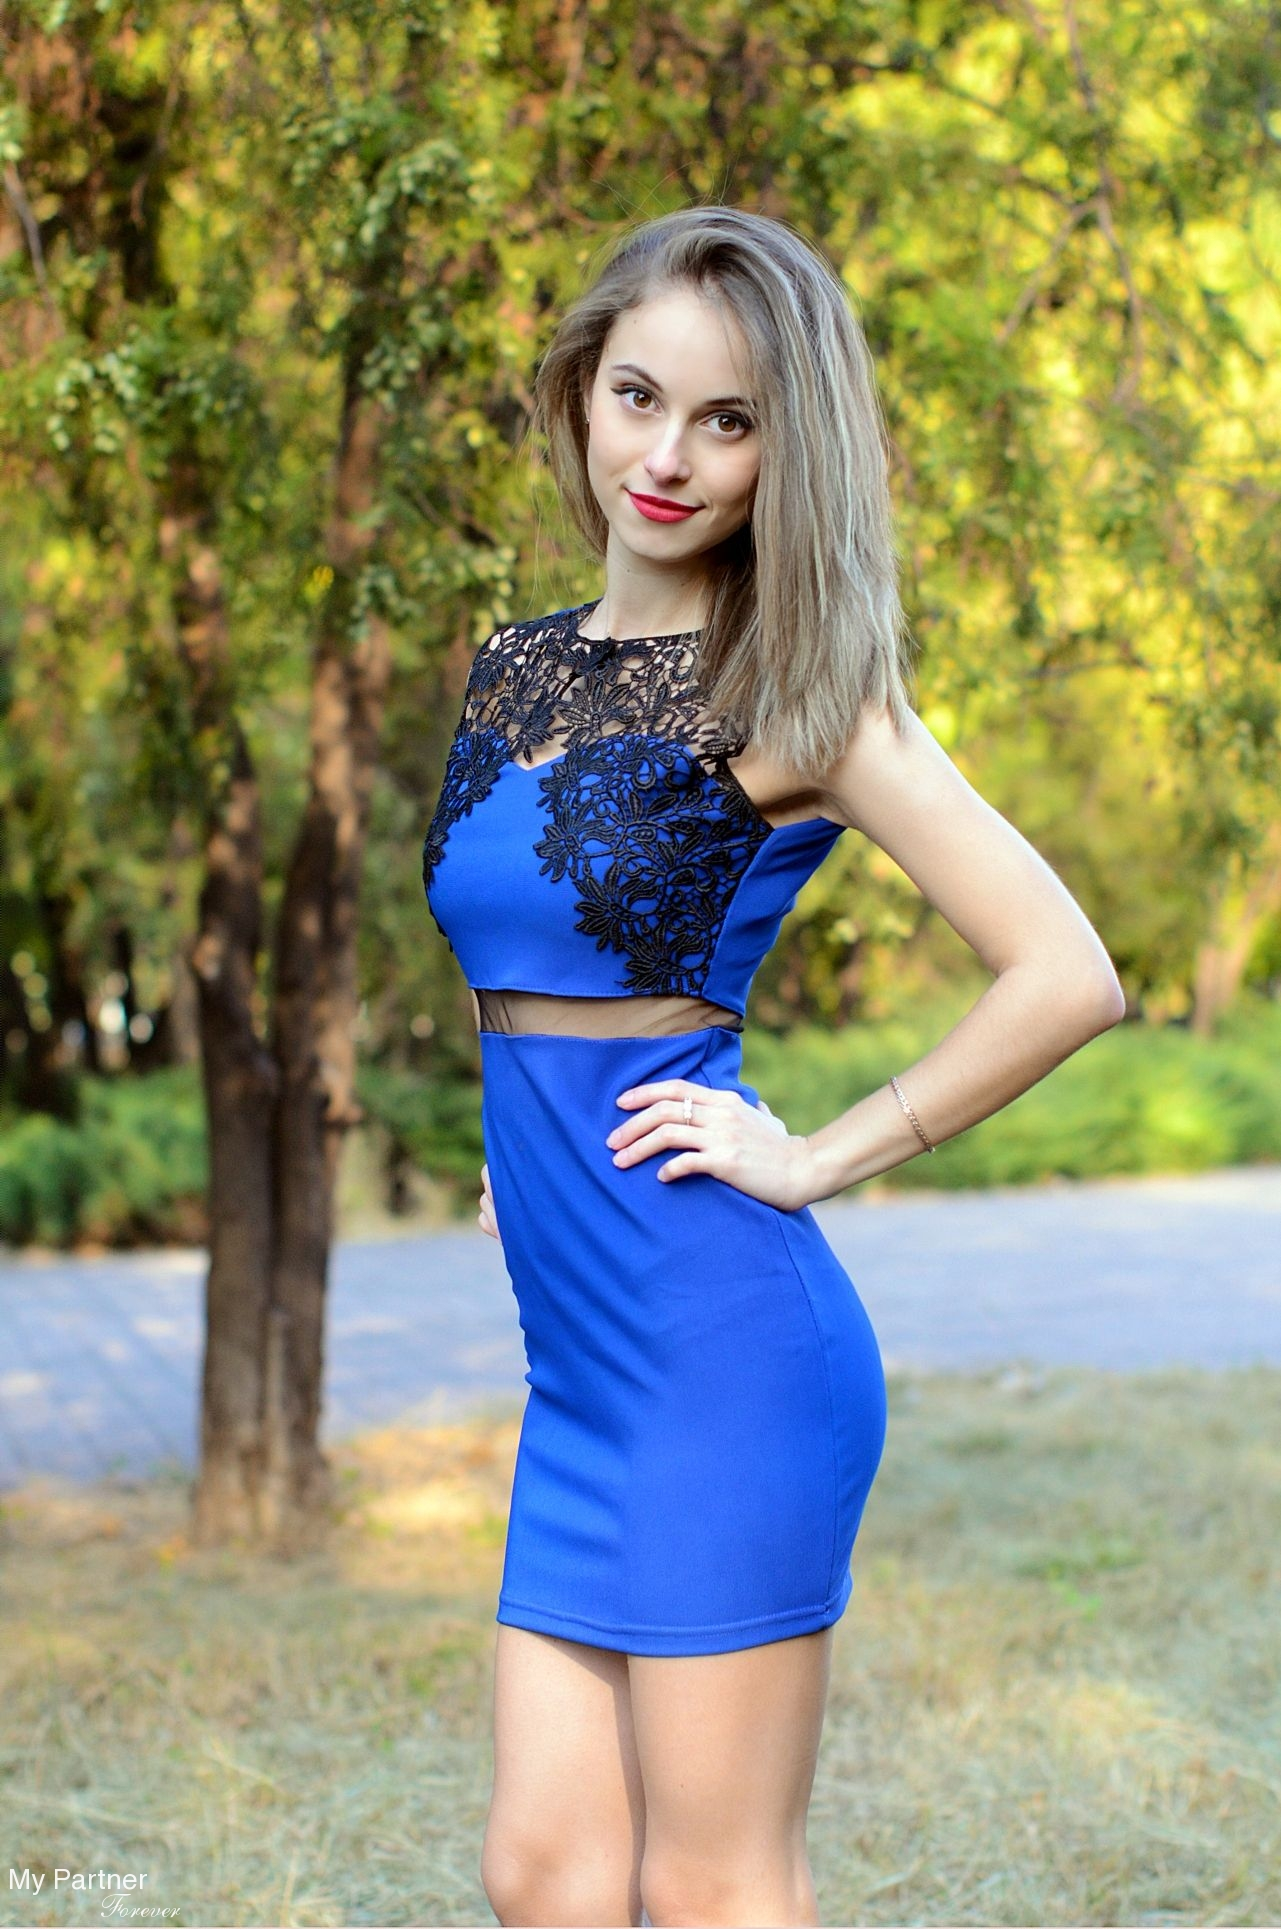 dating in ukraine Create your profile on uabridescom and become closer to hundreds of ukrainian beauties, view their personals, and start building relationships.